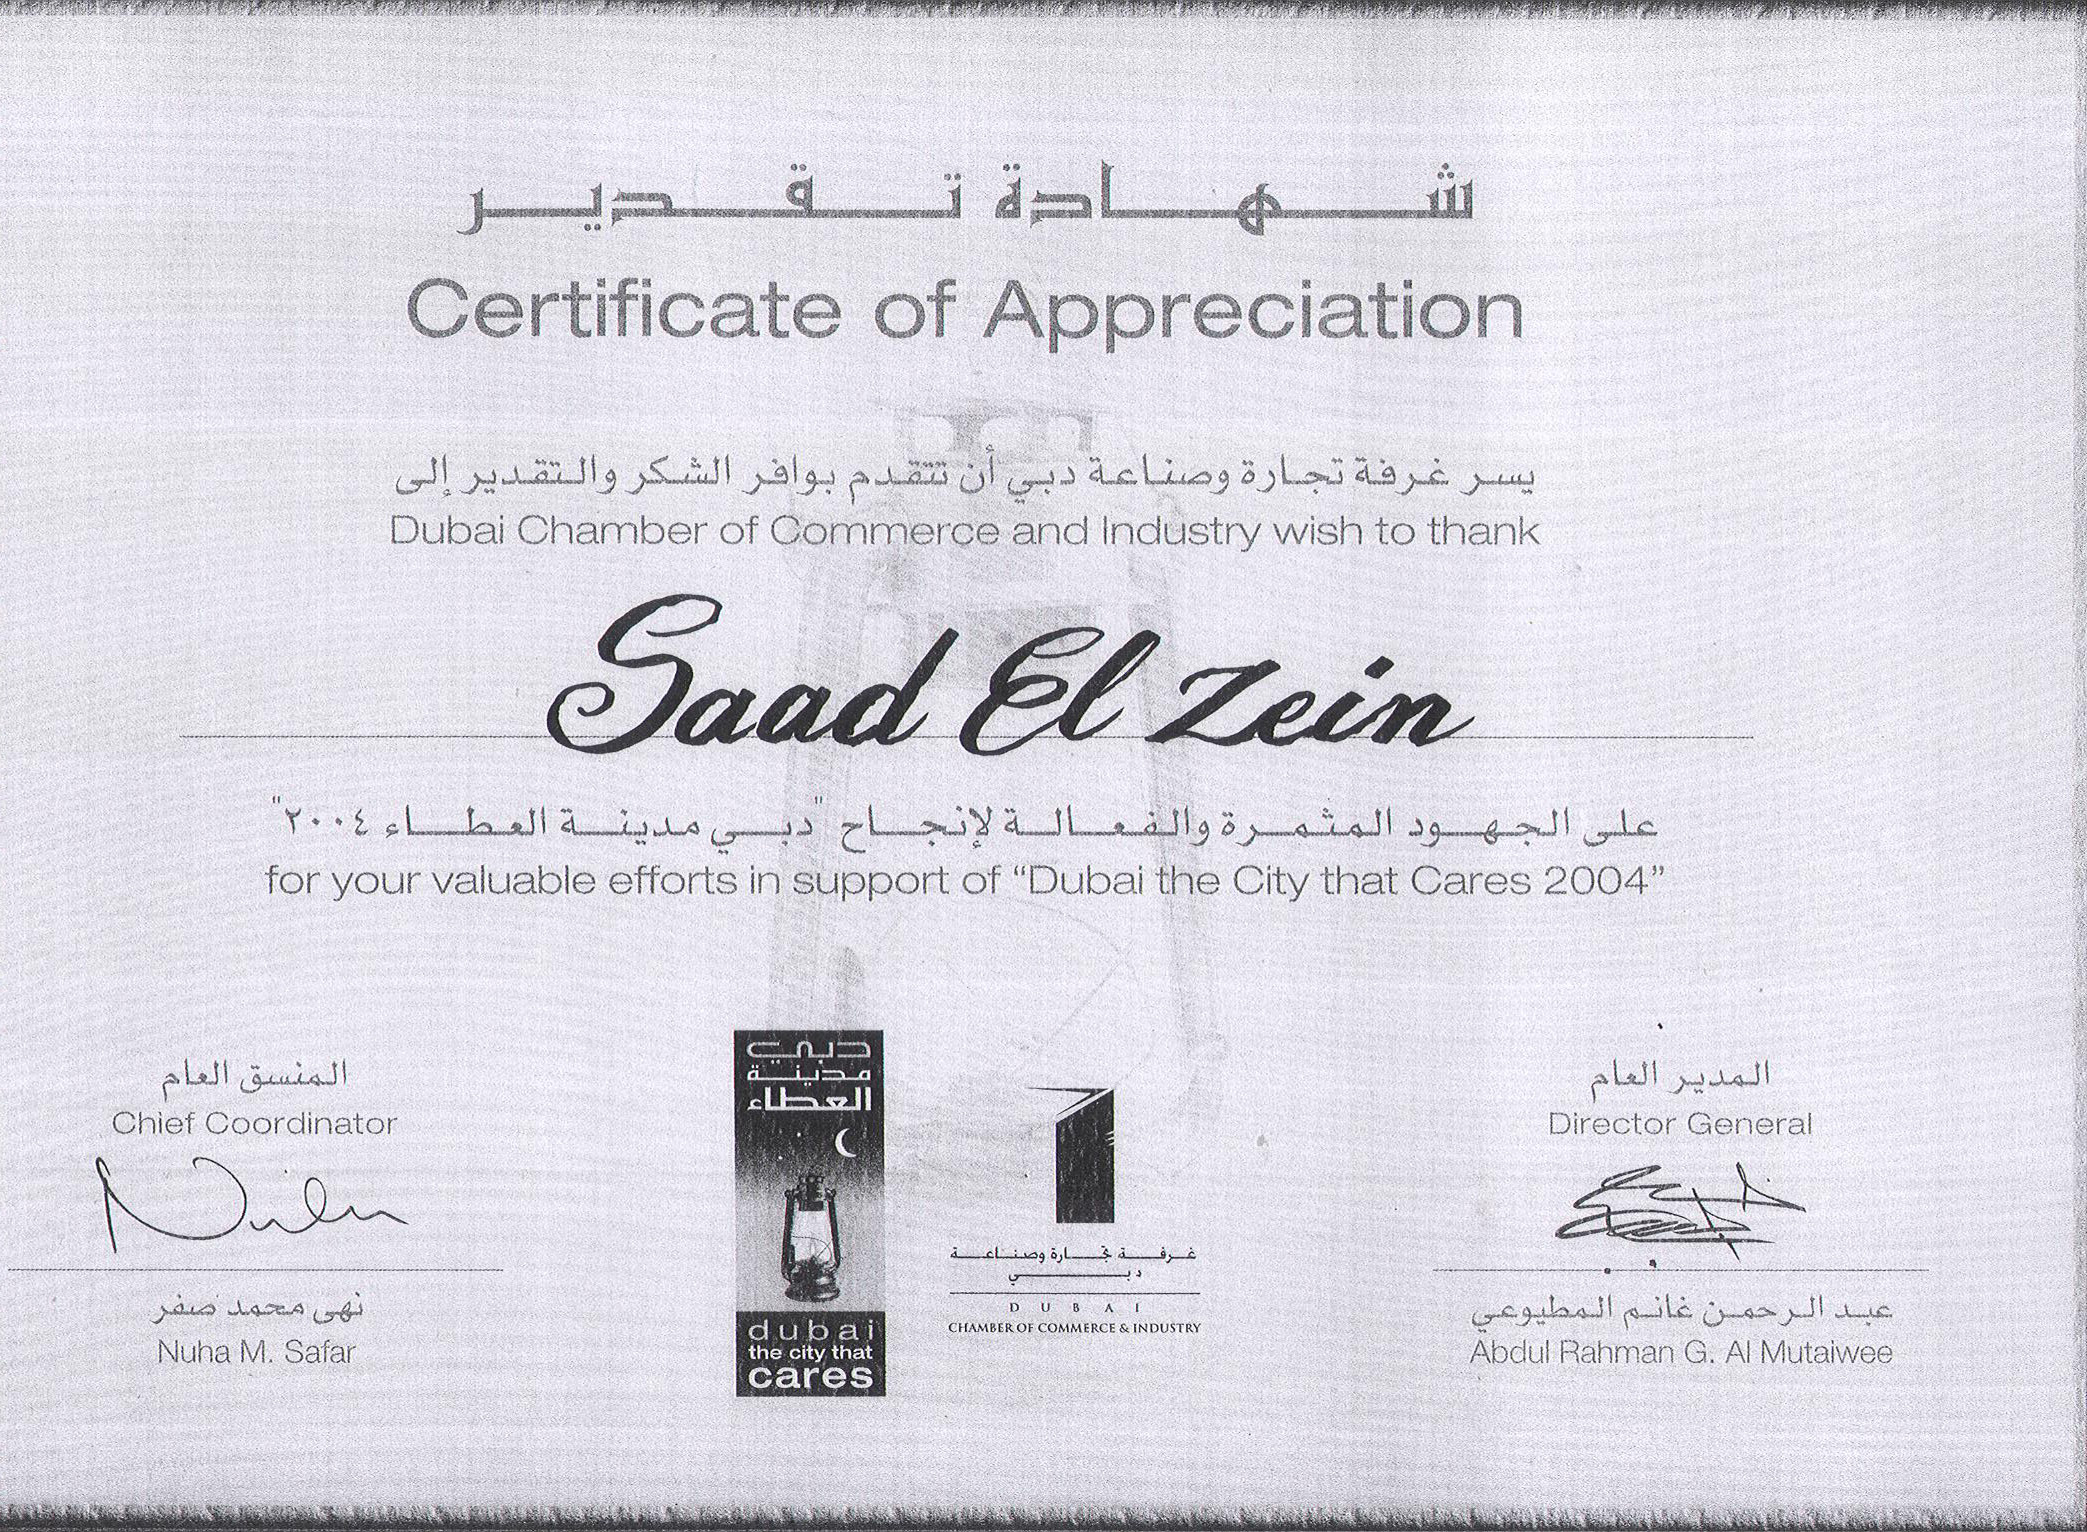 Certificate of appreciation Dubai Chamber of Commerce